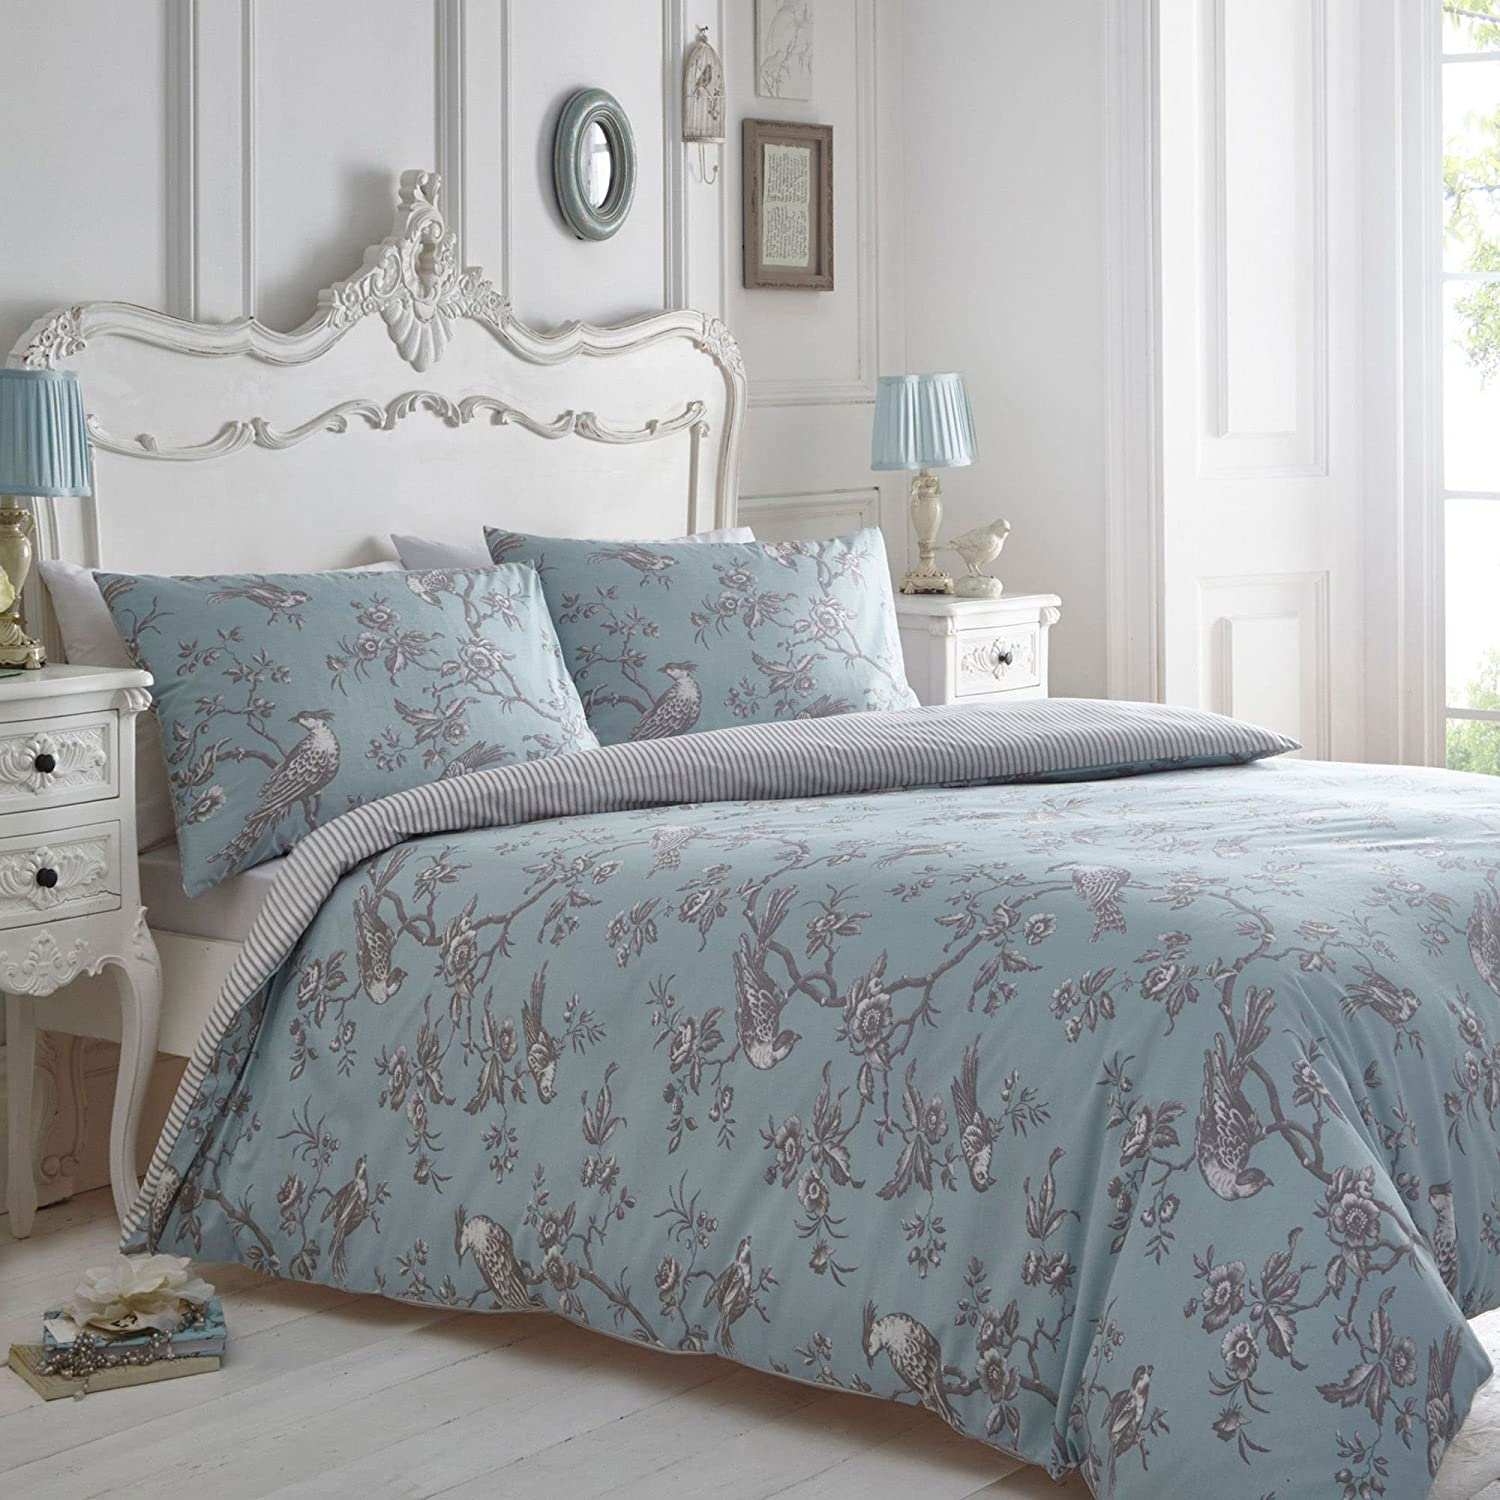 Debenhams Home Blue and grey 'Curious Bird' bedding set double Home Collection